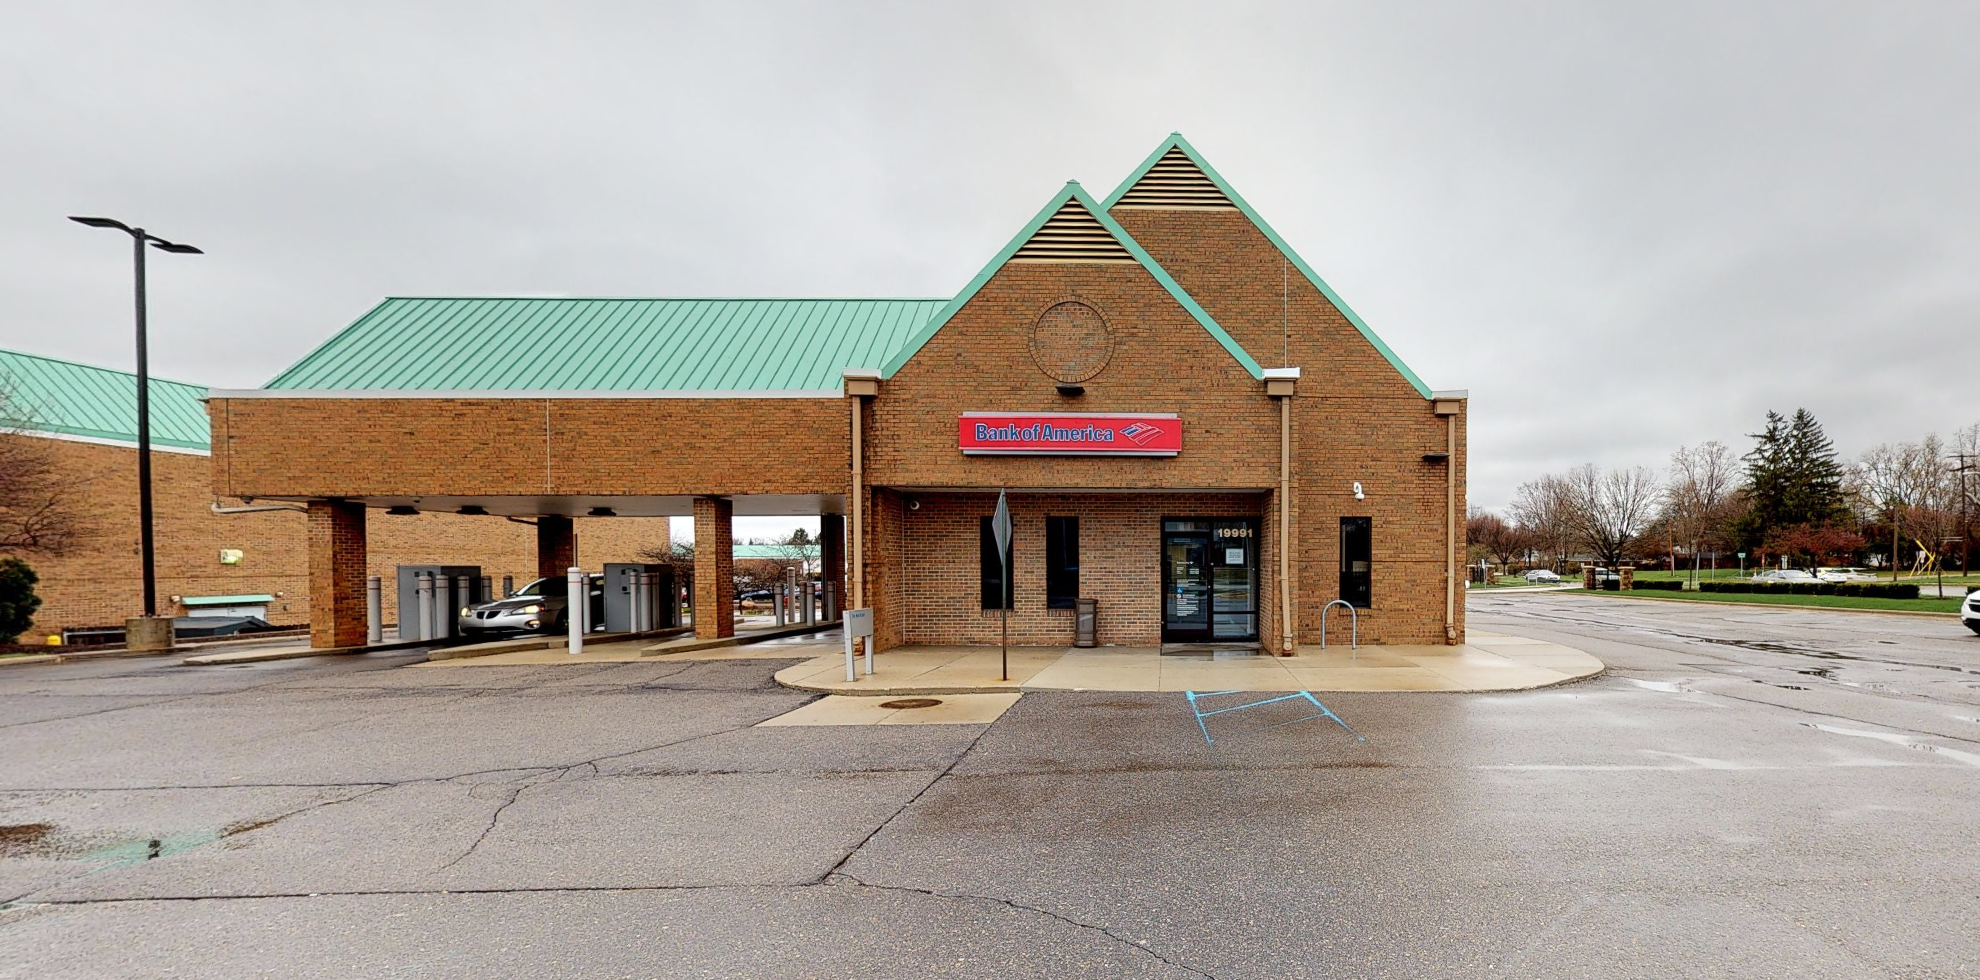 Bank of America financial center with drive-thru ATM | 19991 W 12 Mile Rd, Southfield, MI 48076